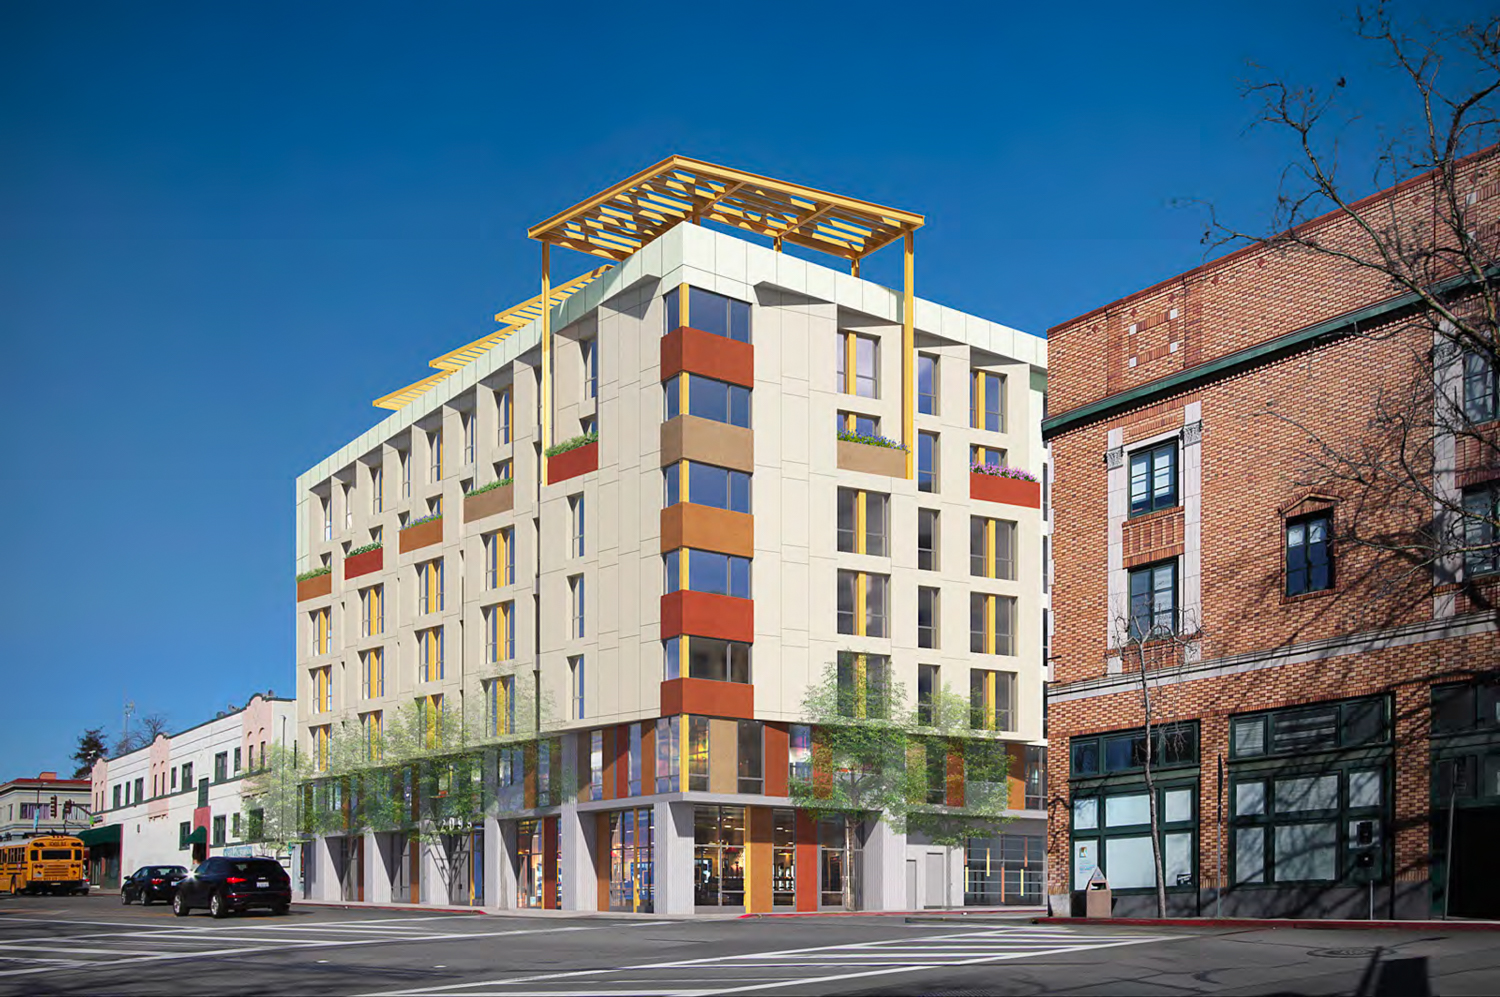 2099 Martin Luther King Jr Way, rendering by Kava Massih Architects